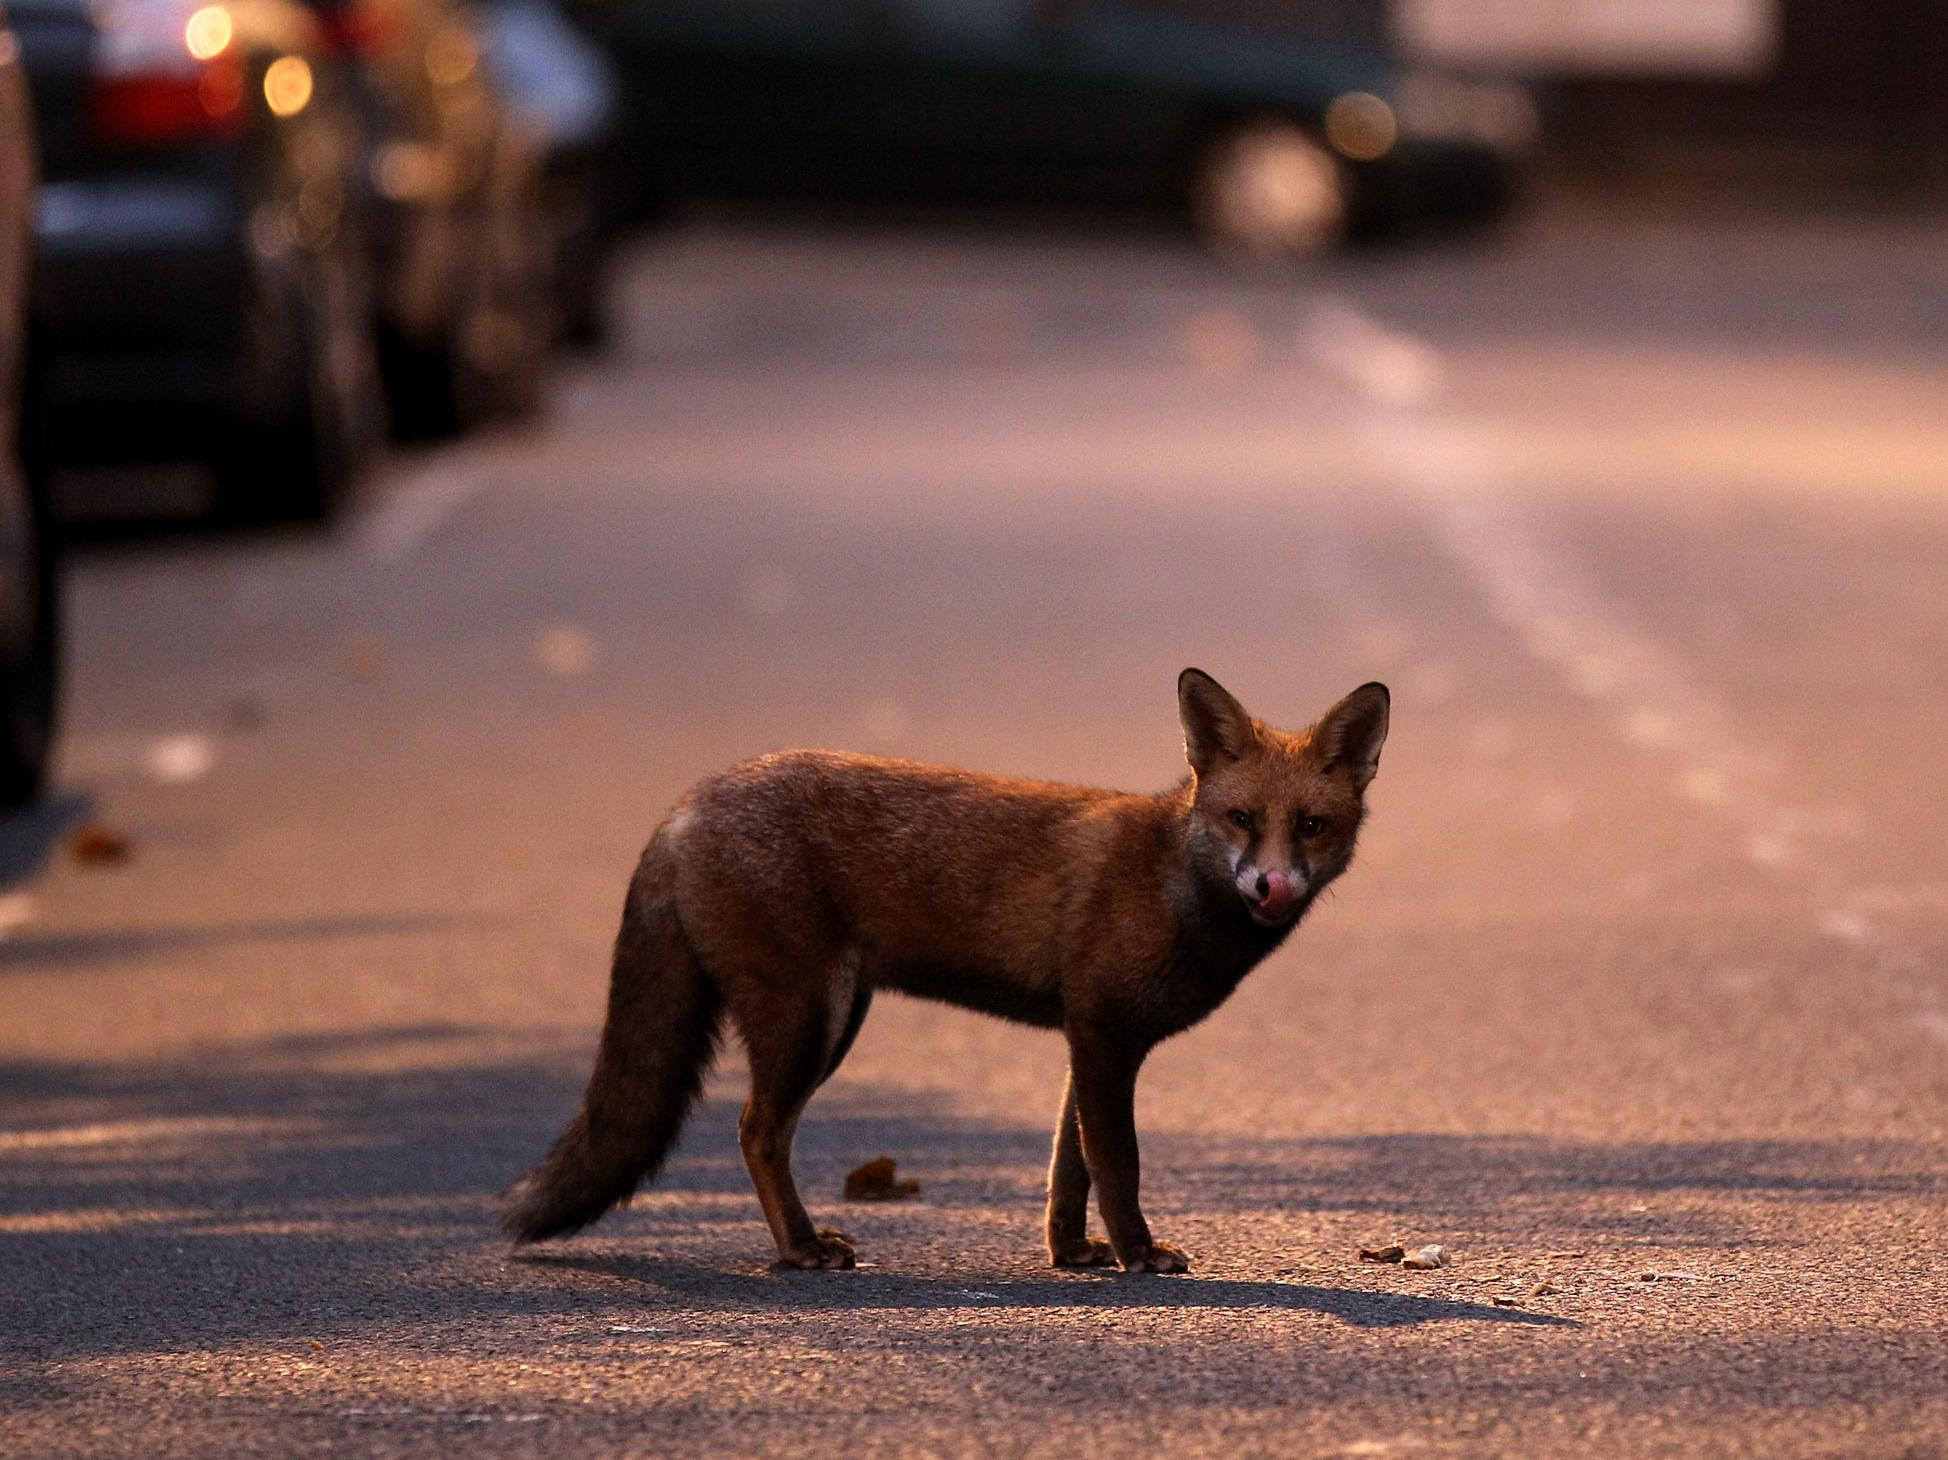 Urban foxes are growing more 'similar to domesticated dogs', research finds